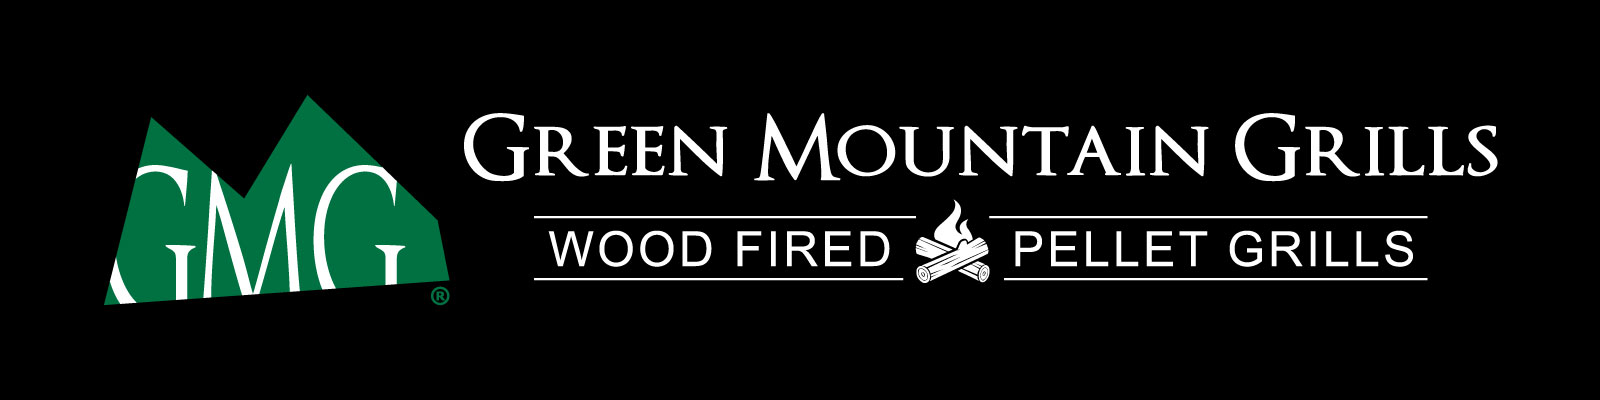 Link to Green Mountain Grills through Green Mountain Grills Logo